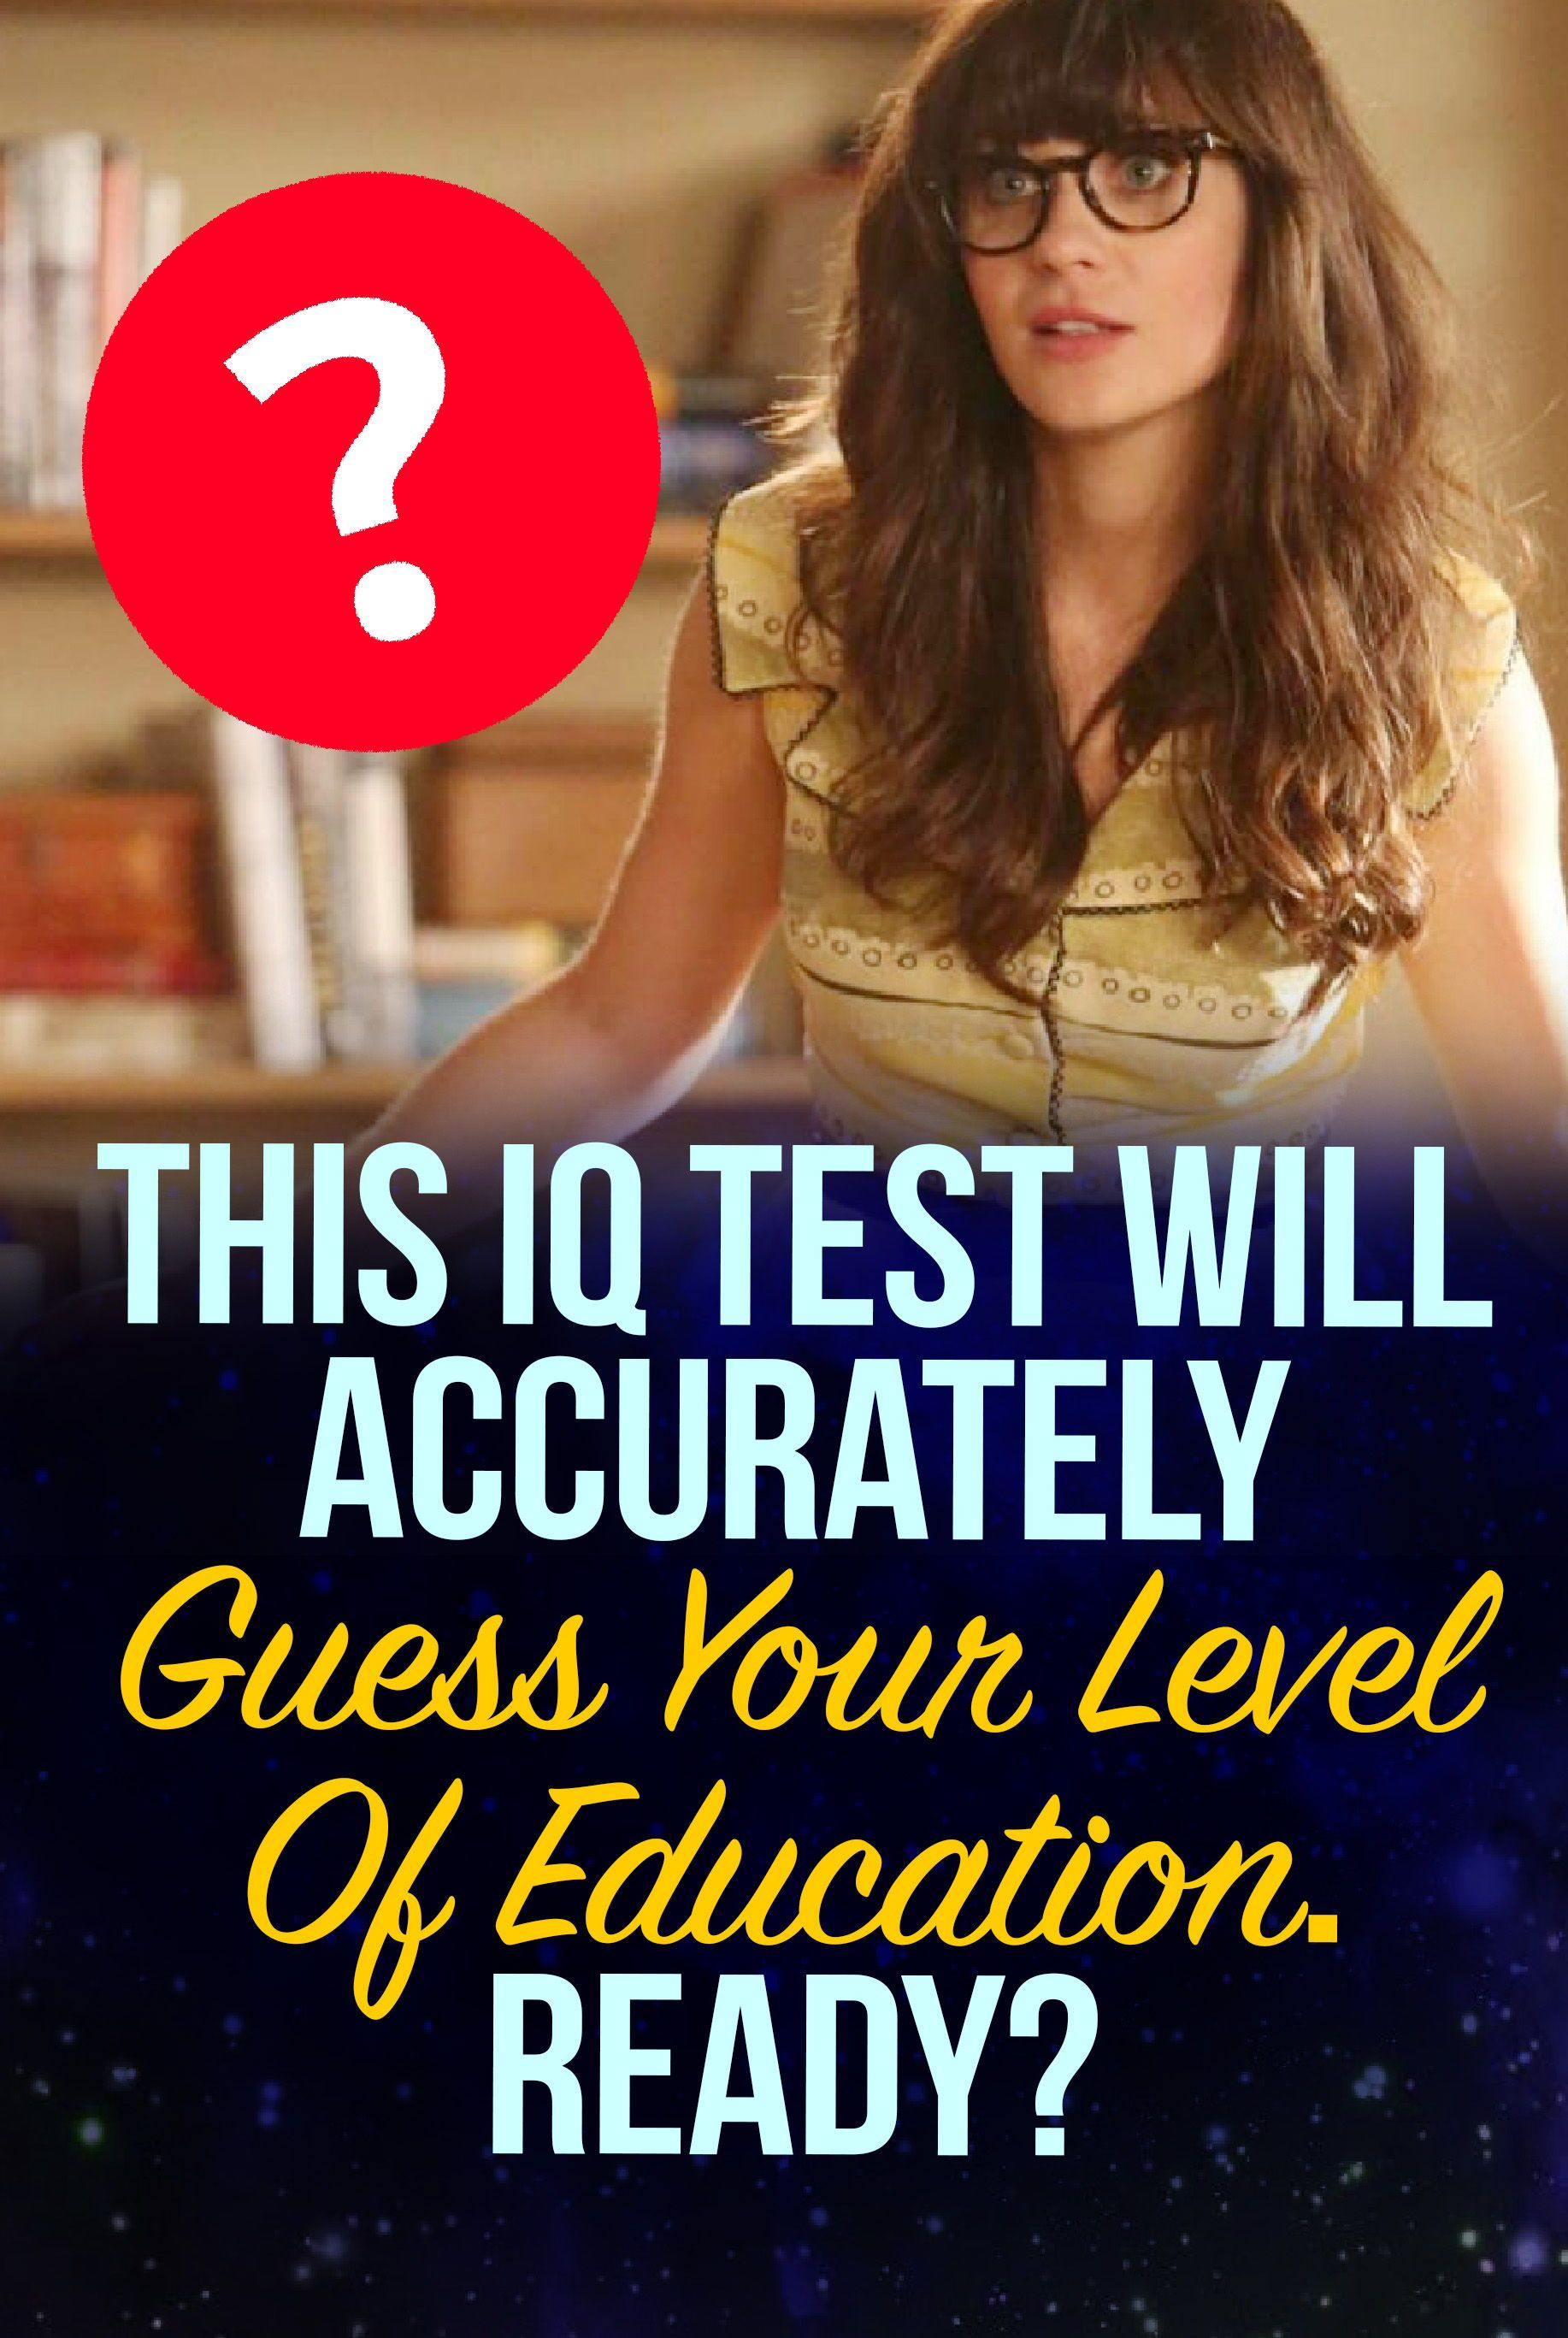 Quiz: This IQ Test Will Accurately Guess Your Level Of